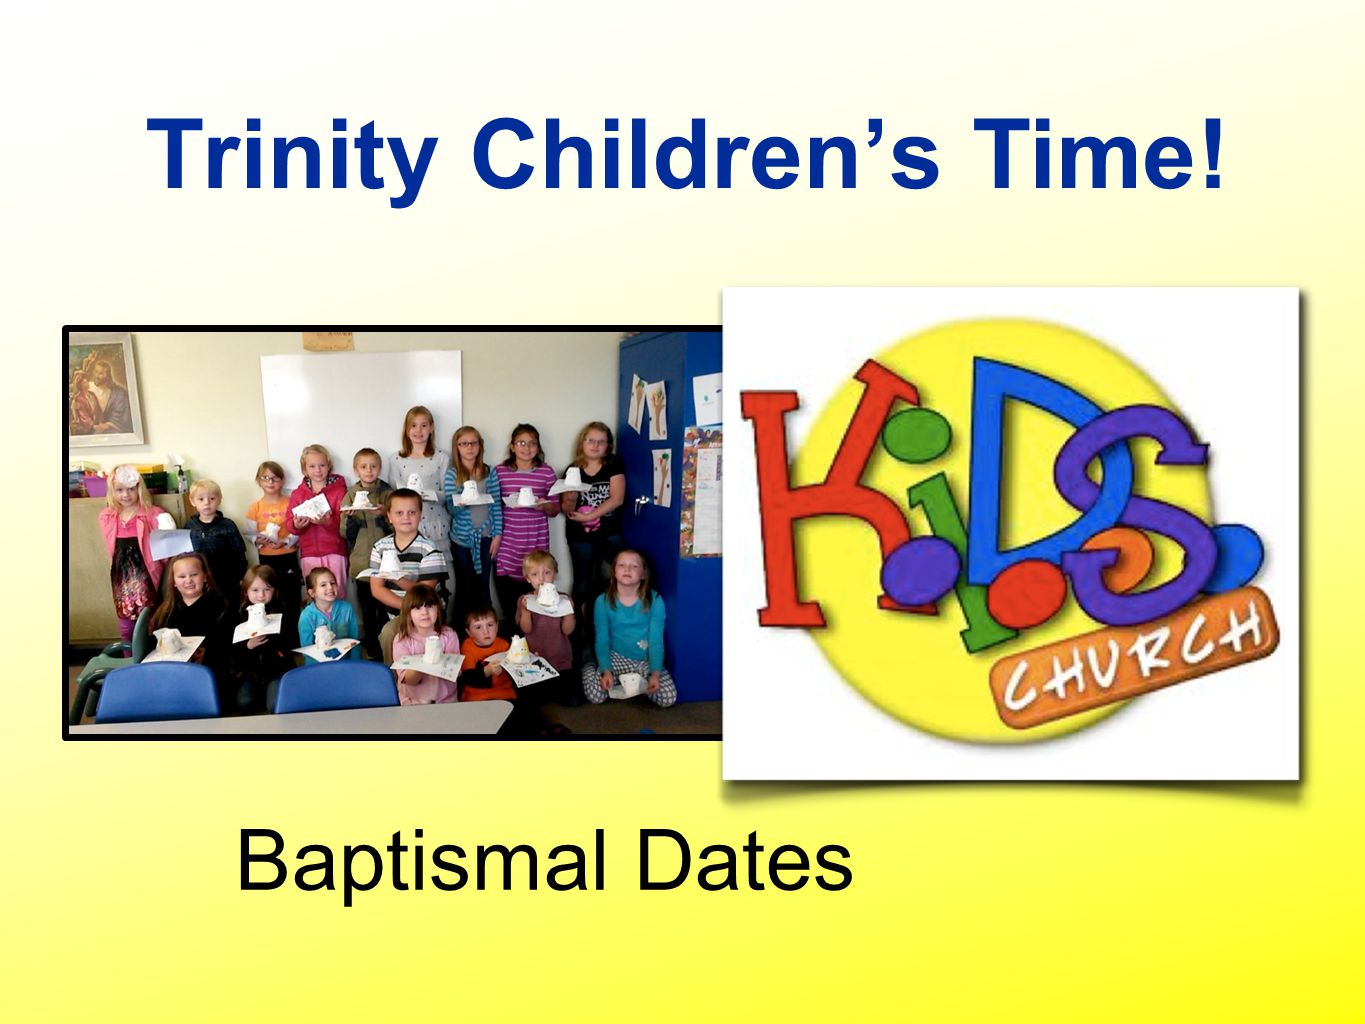 Trinity Children's Time! Baptismal Dates